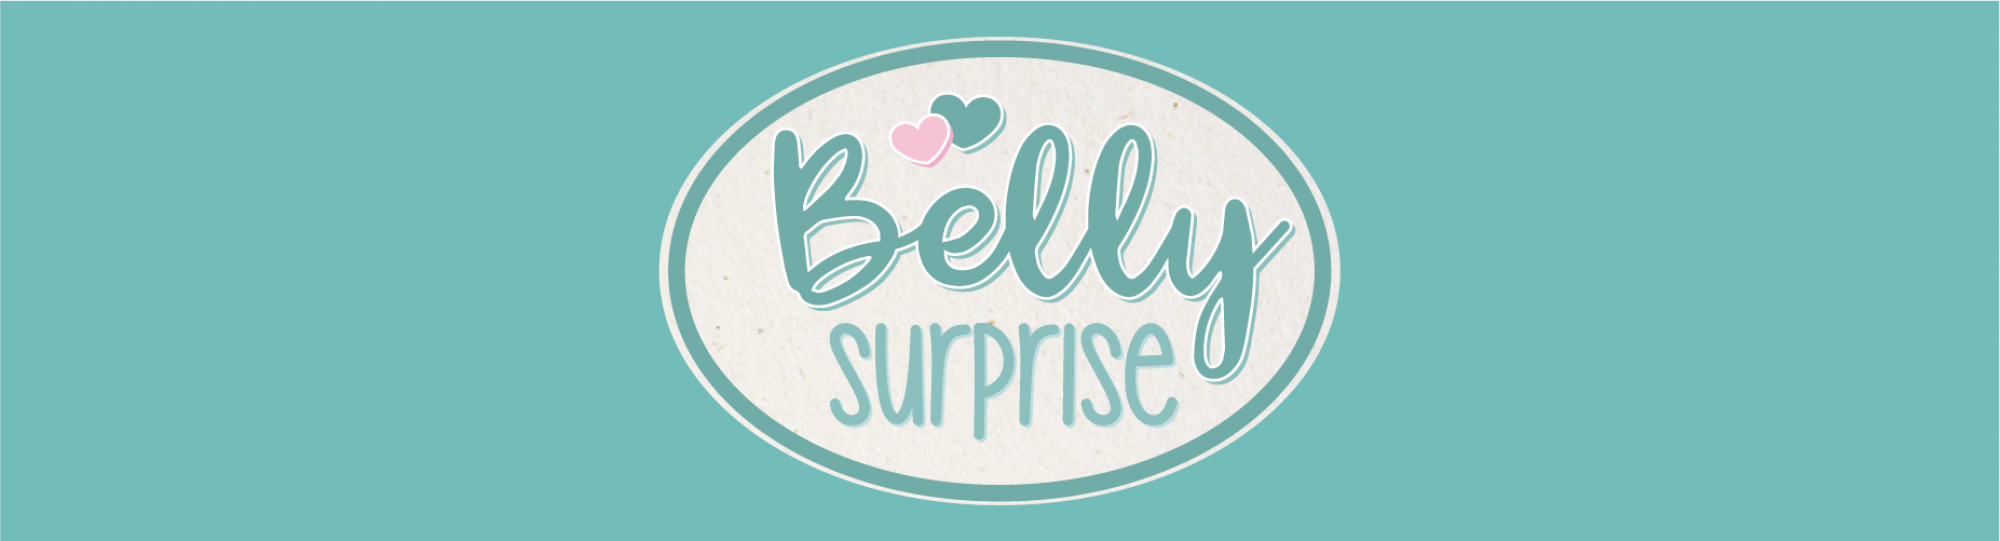 BellySurprise-brand-button@4x.png